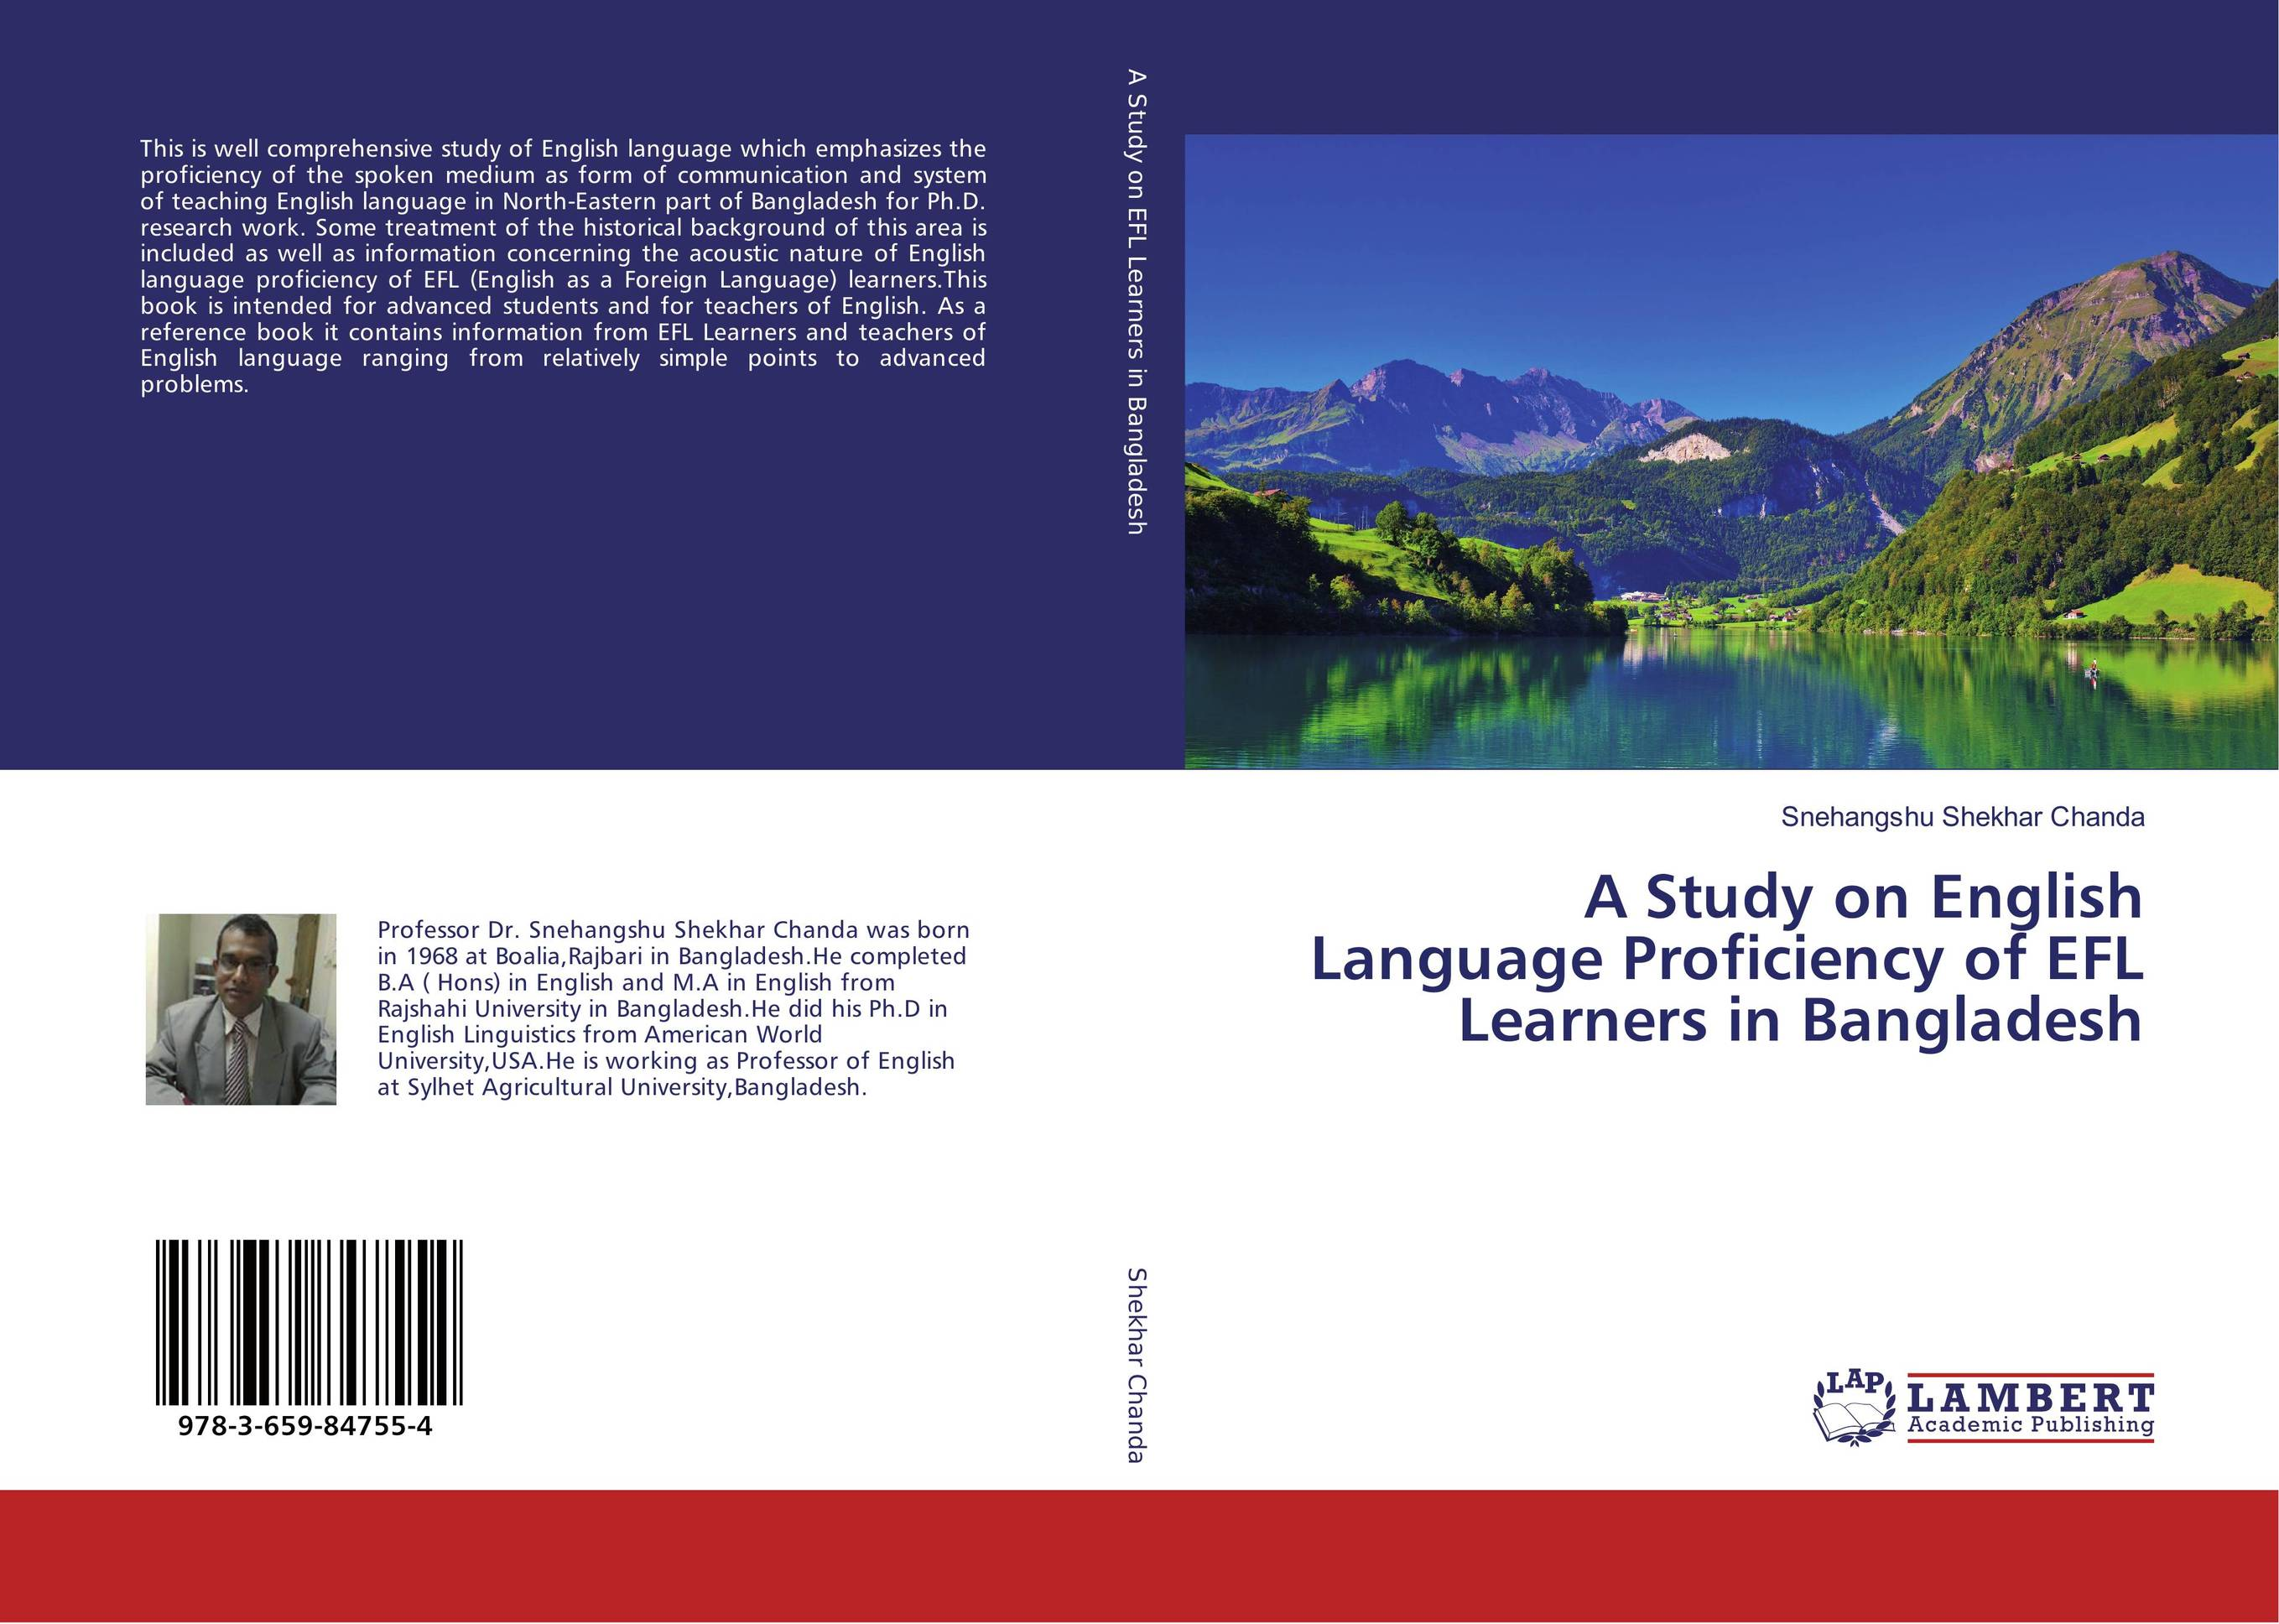 A Study on English Language Proficiency of EFL Learners in Bangladesh myriad mirrors reflections on north east indian literature in english